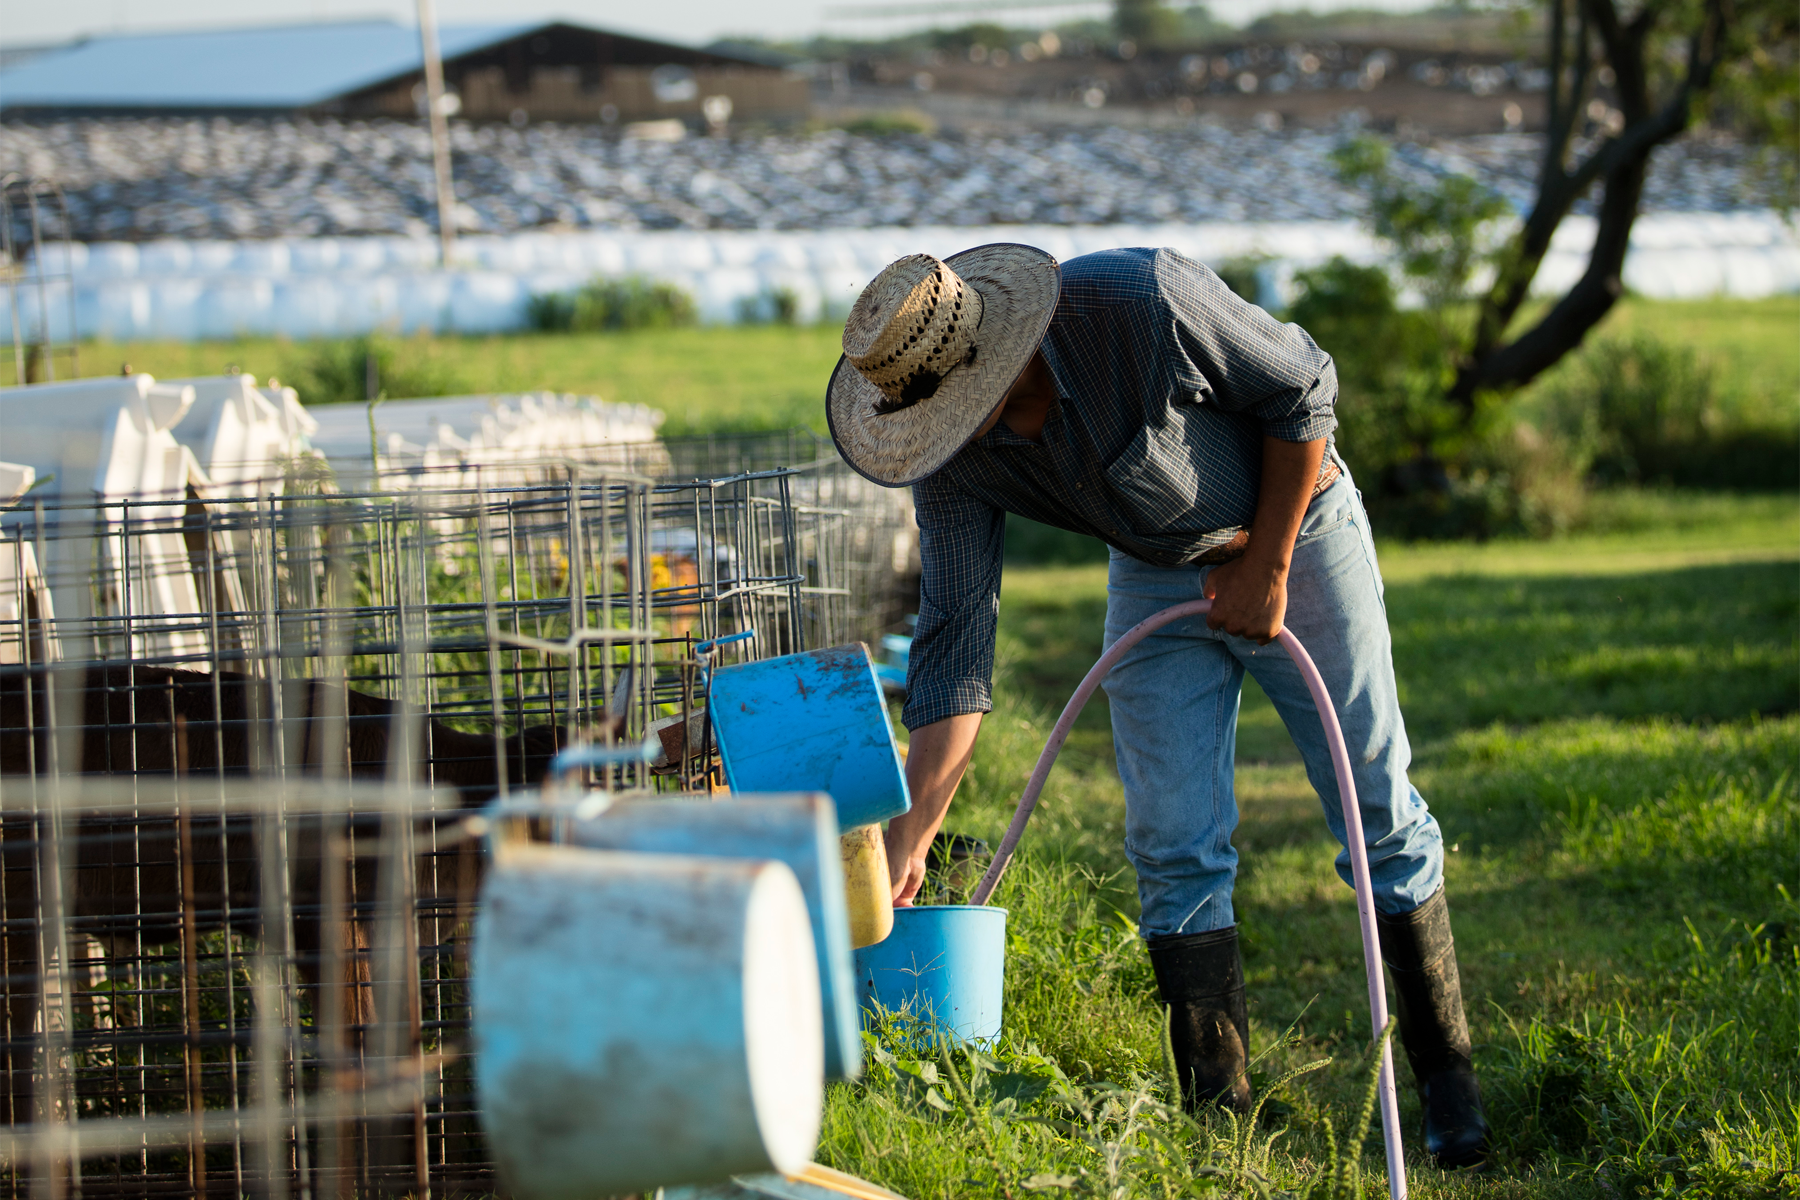 Calf hutches can be a major source of flies on dairy farms, and implementing proper bedding management practices can help reduce flies around calf hutches.